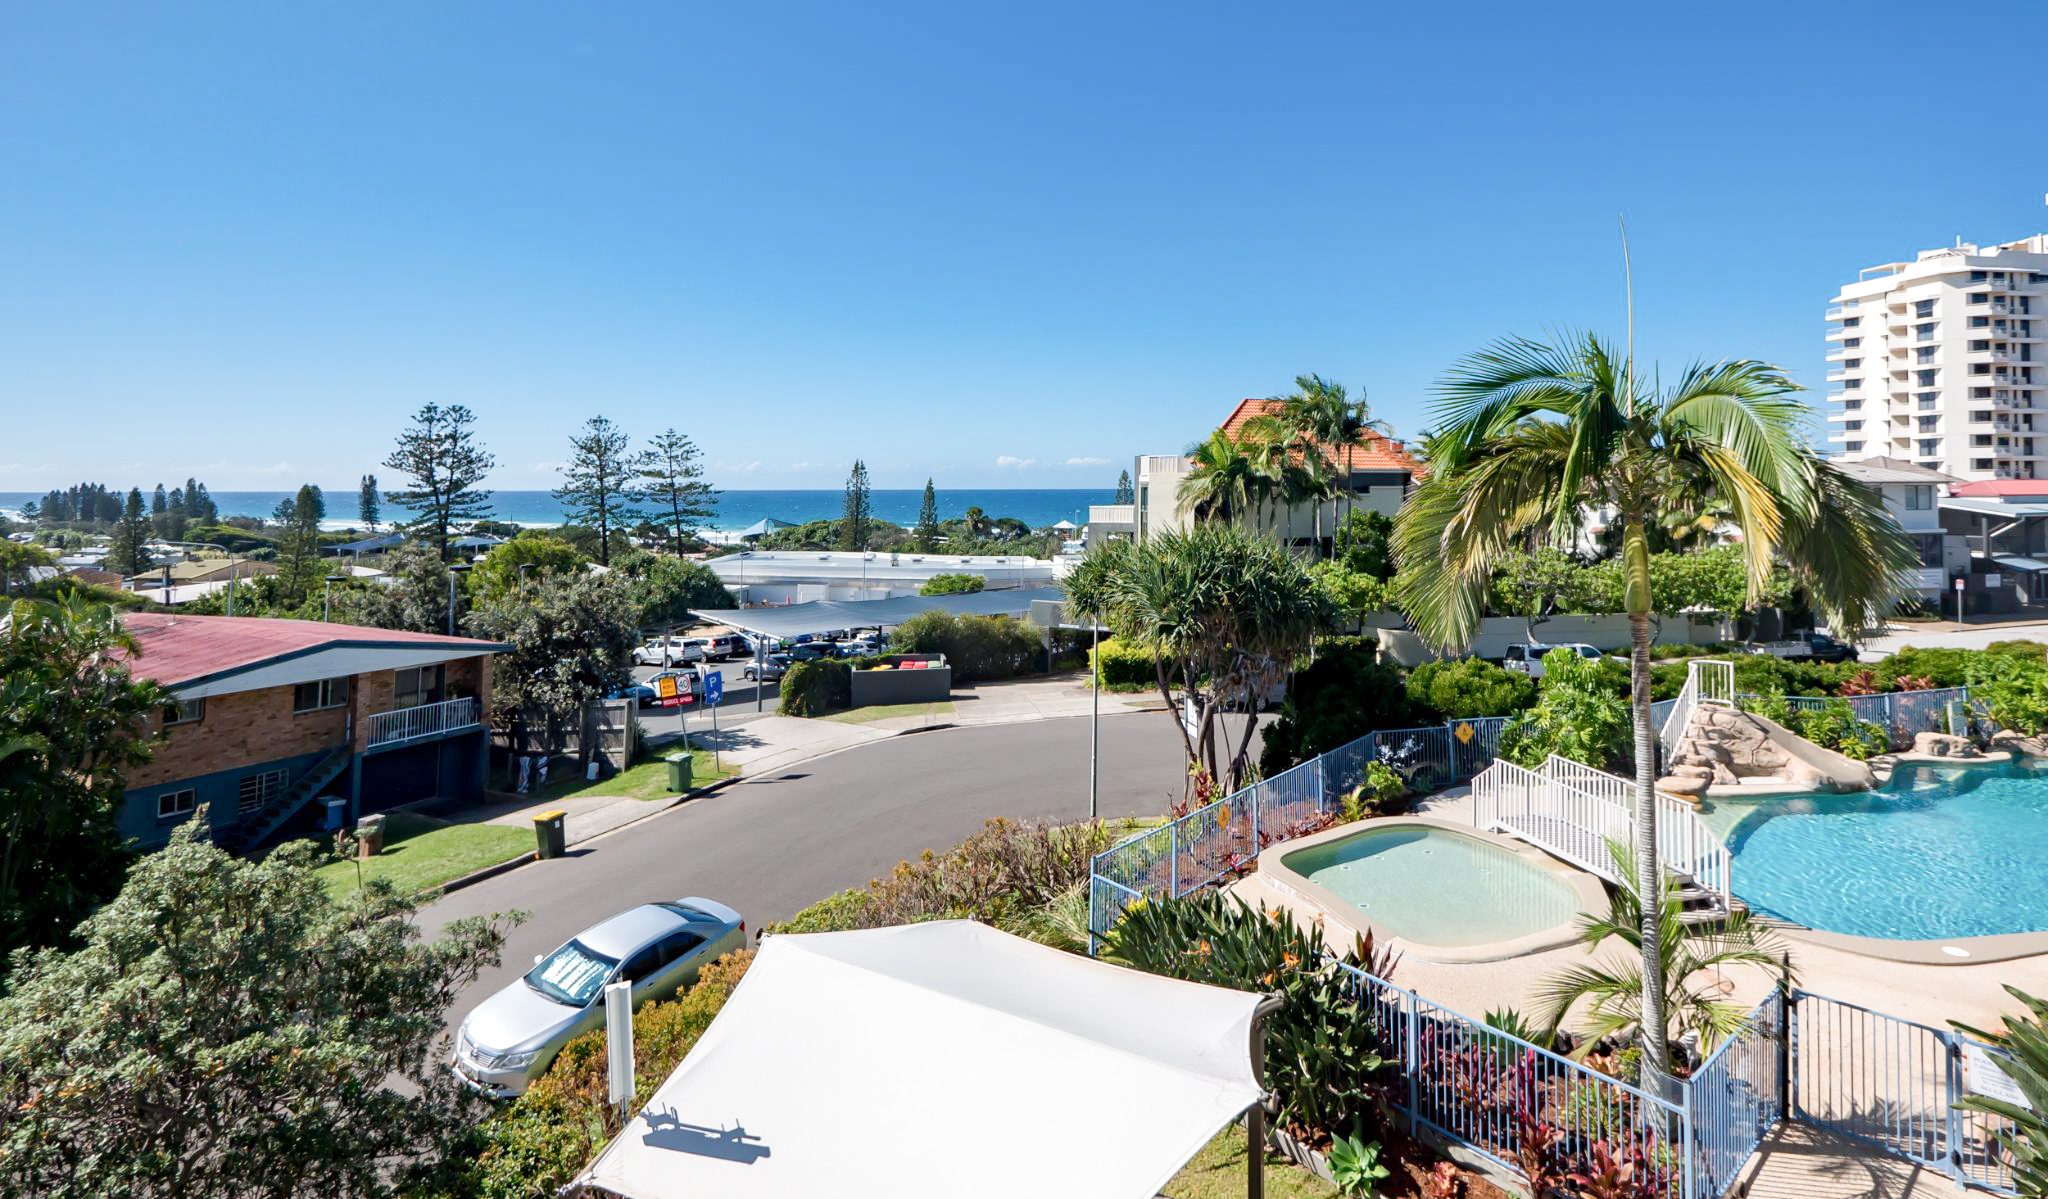 Best beaches sunshine coast 2 Bed Ocean View Endless Summer Resort